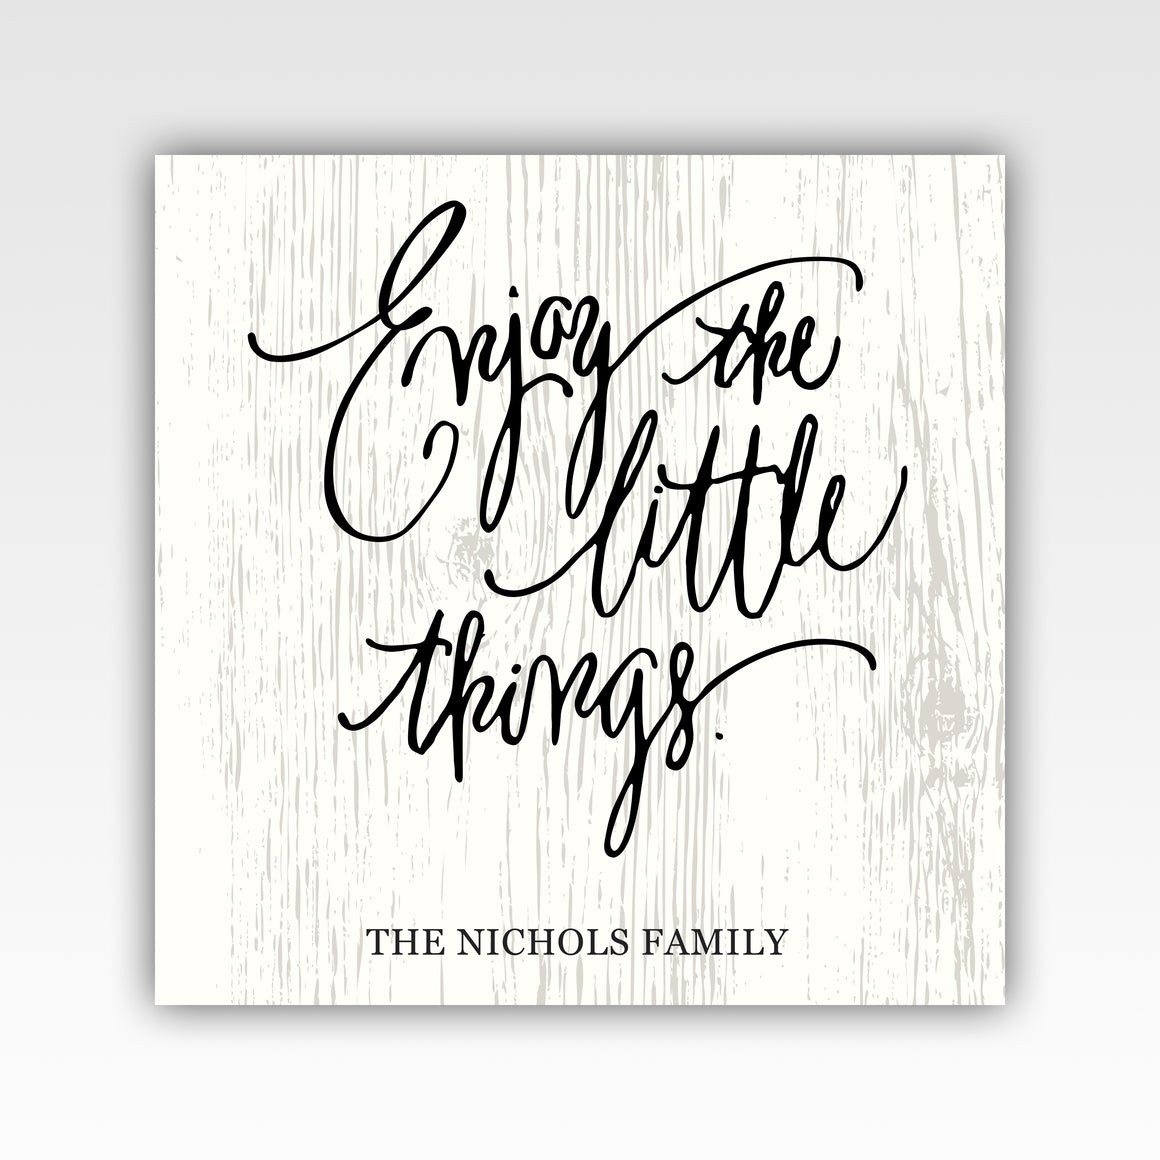 Personalized!! Enjoy The Little Things Family Gifts Canvas Wrap, Home Decor Painting Wall Art